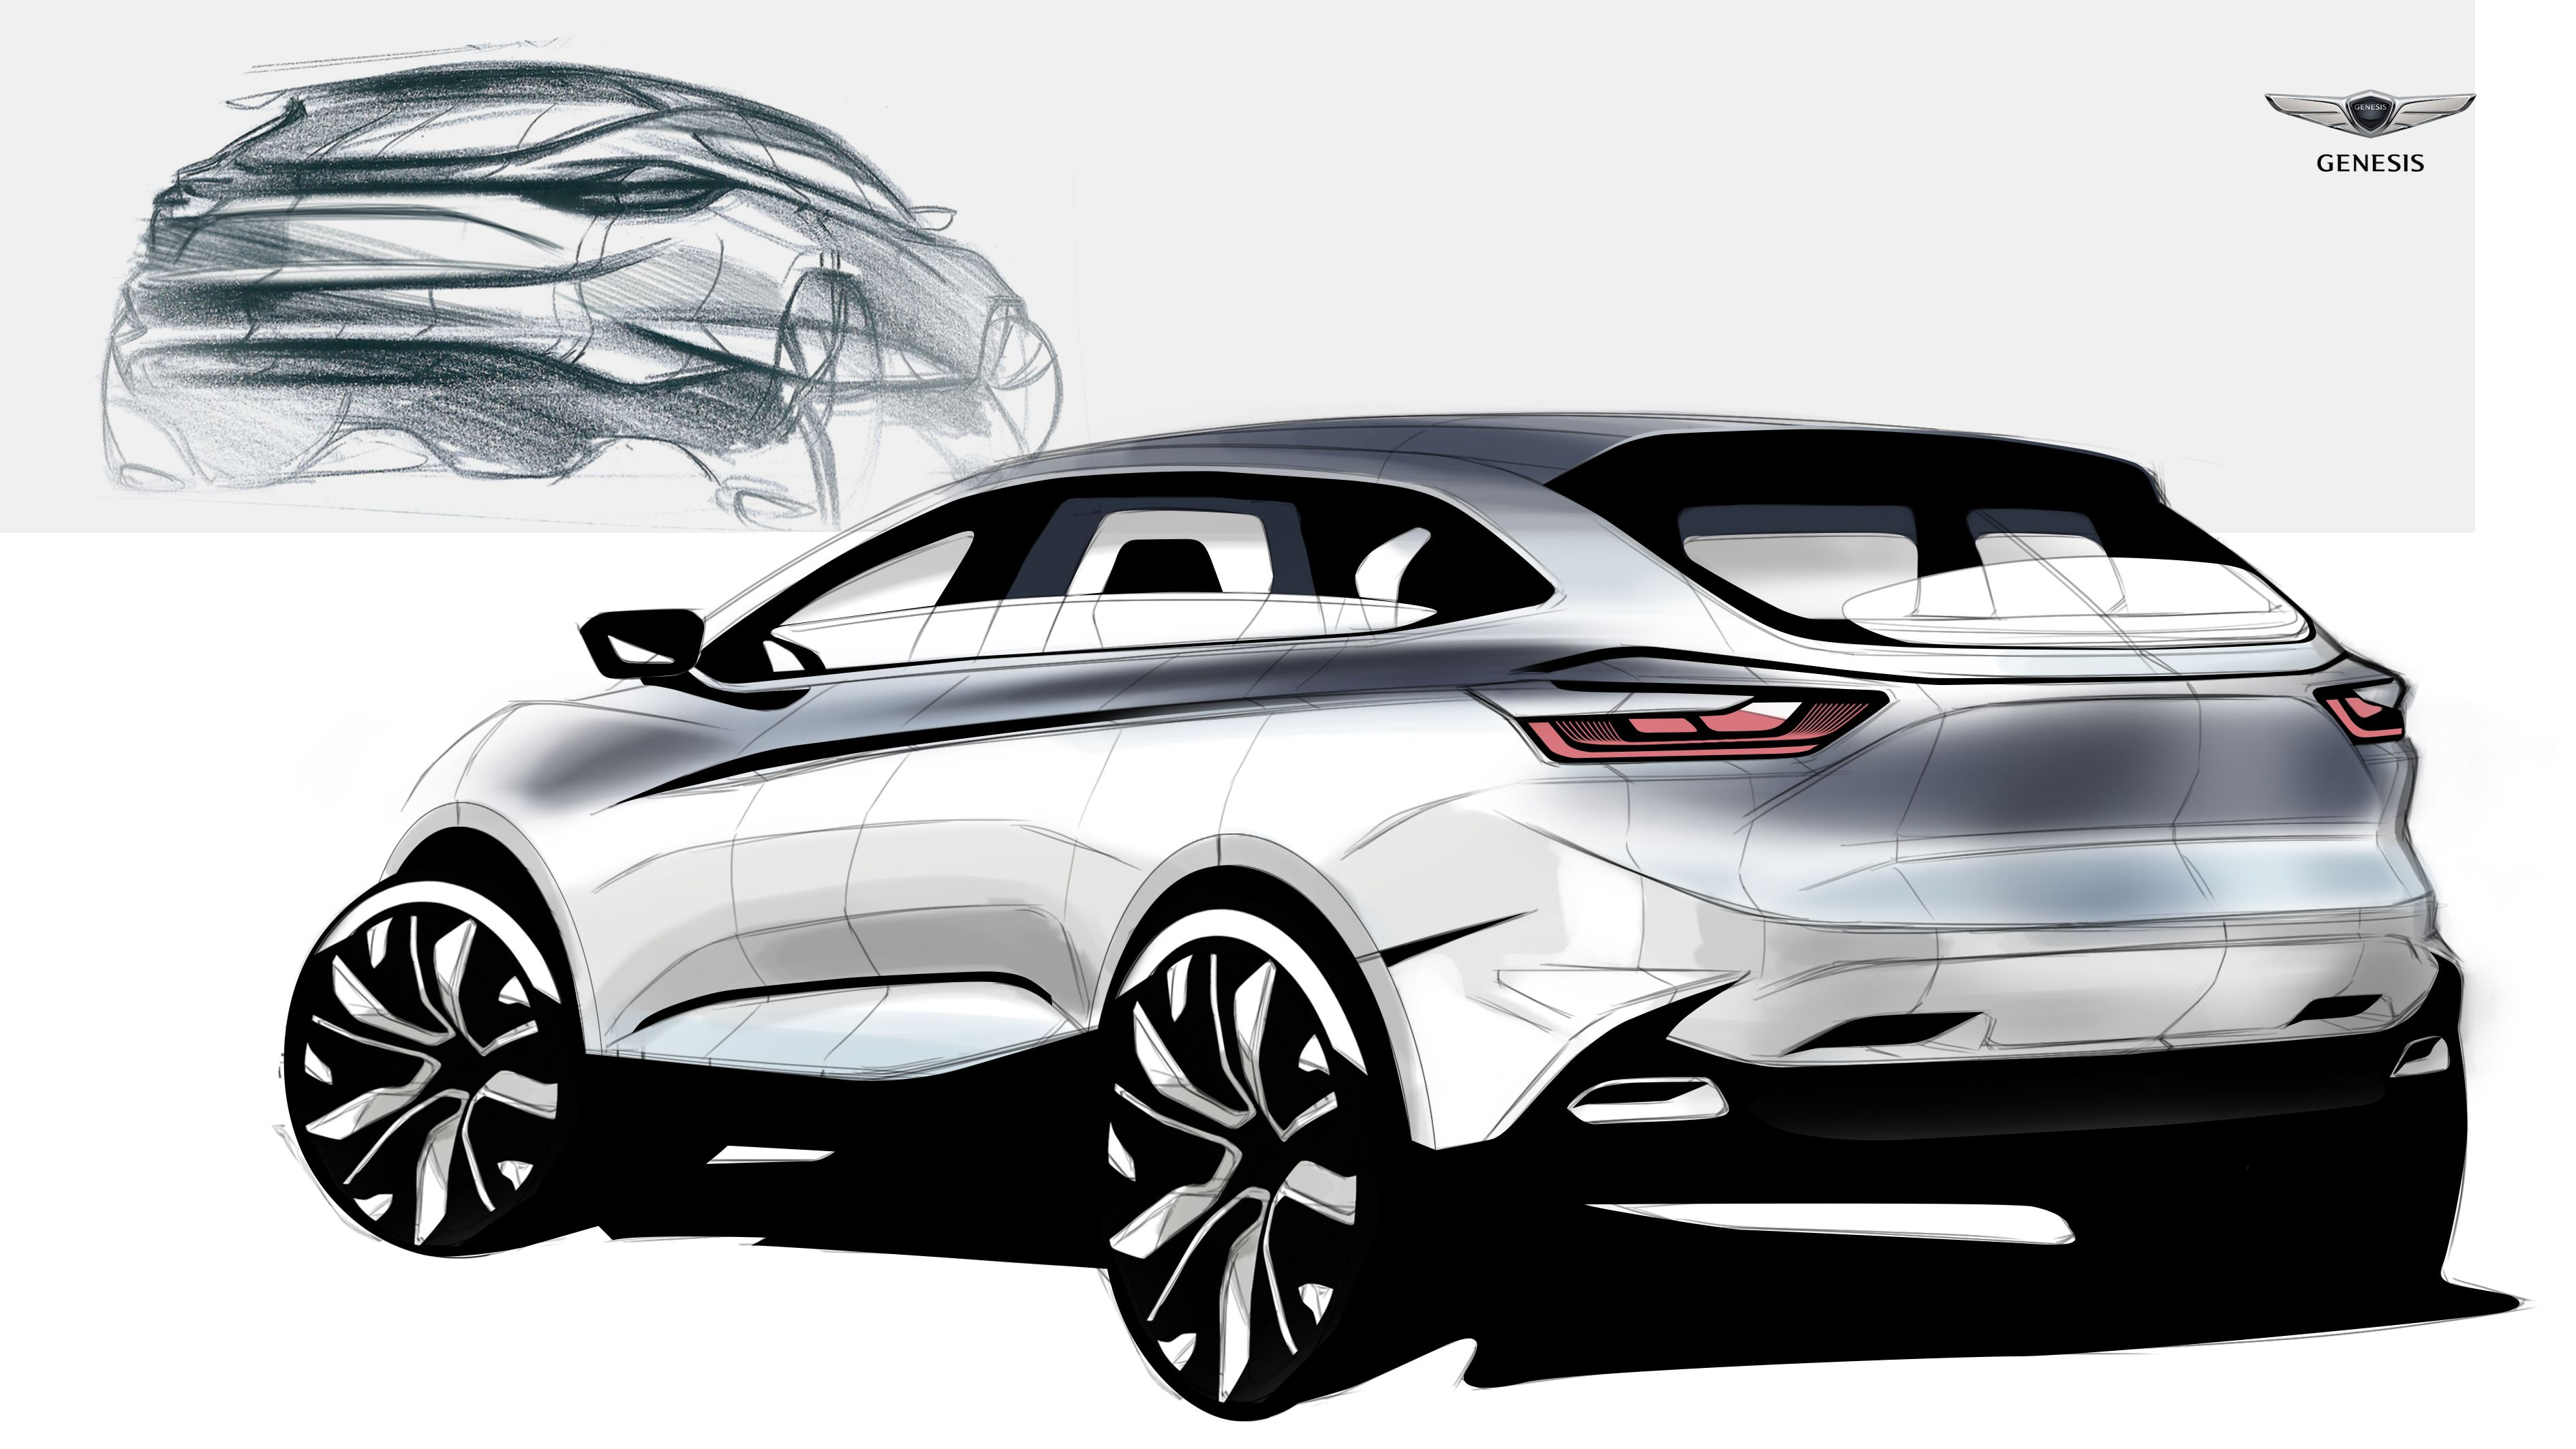 Luxury Suv Of Genesis Sketch On Behance Car Sketch Pinterest